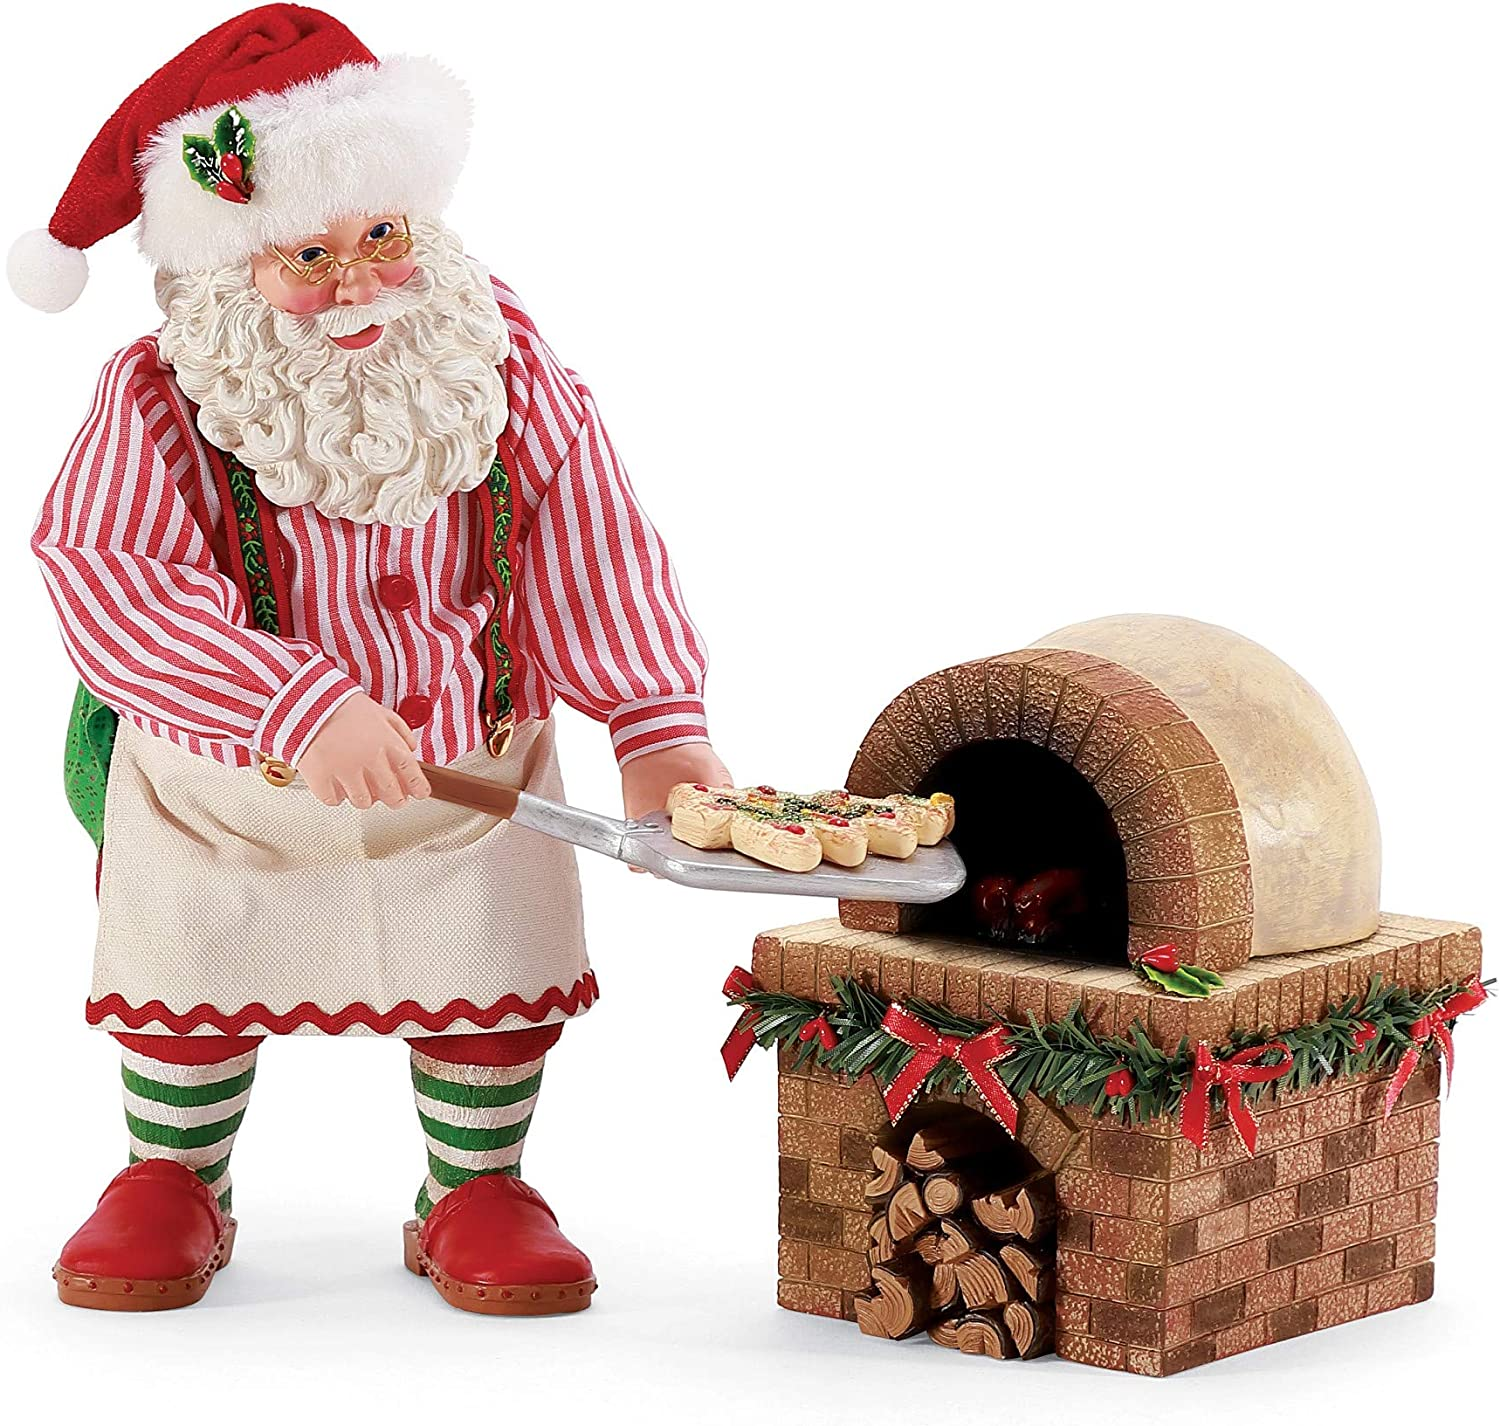 Department 56 Possible Dreams Bon Apetit Santa Christmas Pizza and Oven Figurine Set, 10.5 Inch, Multicolor